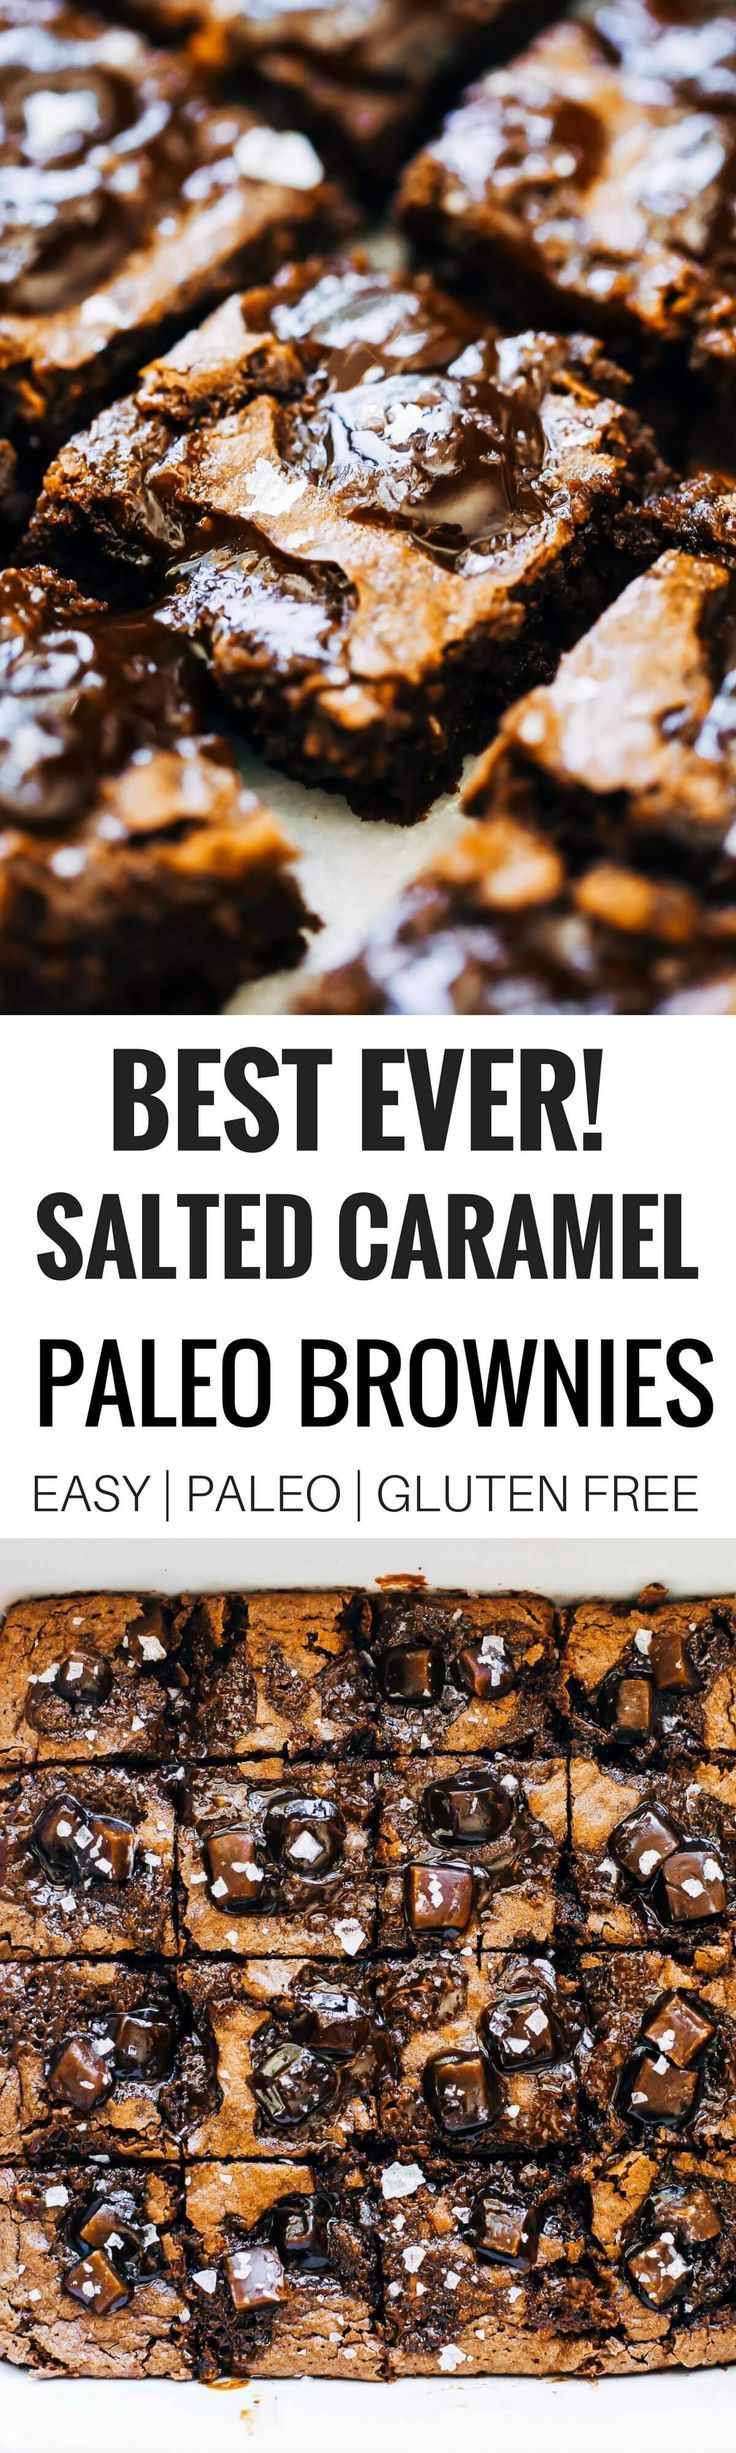 The ultimate fudgey paleo salted caramel brownies. Thick. Dense. Perfect fudgification. Caramel Pools. Appropriate gooey-factor. Healthy, gluten free, and paleo brownies. These brownies are rockstars, winning hearts of both paleo and wheat-eaters alike! B #paleofoodrecipes